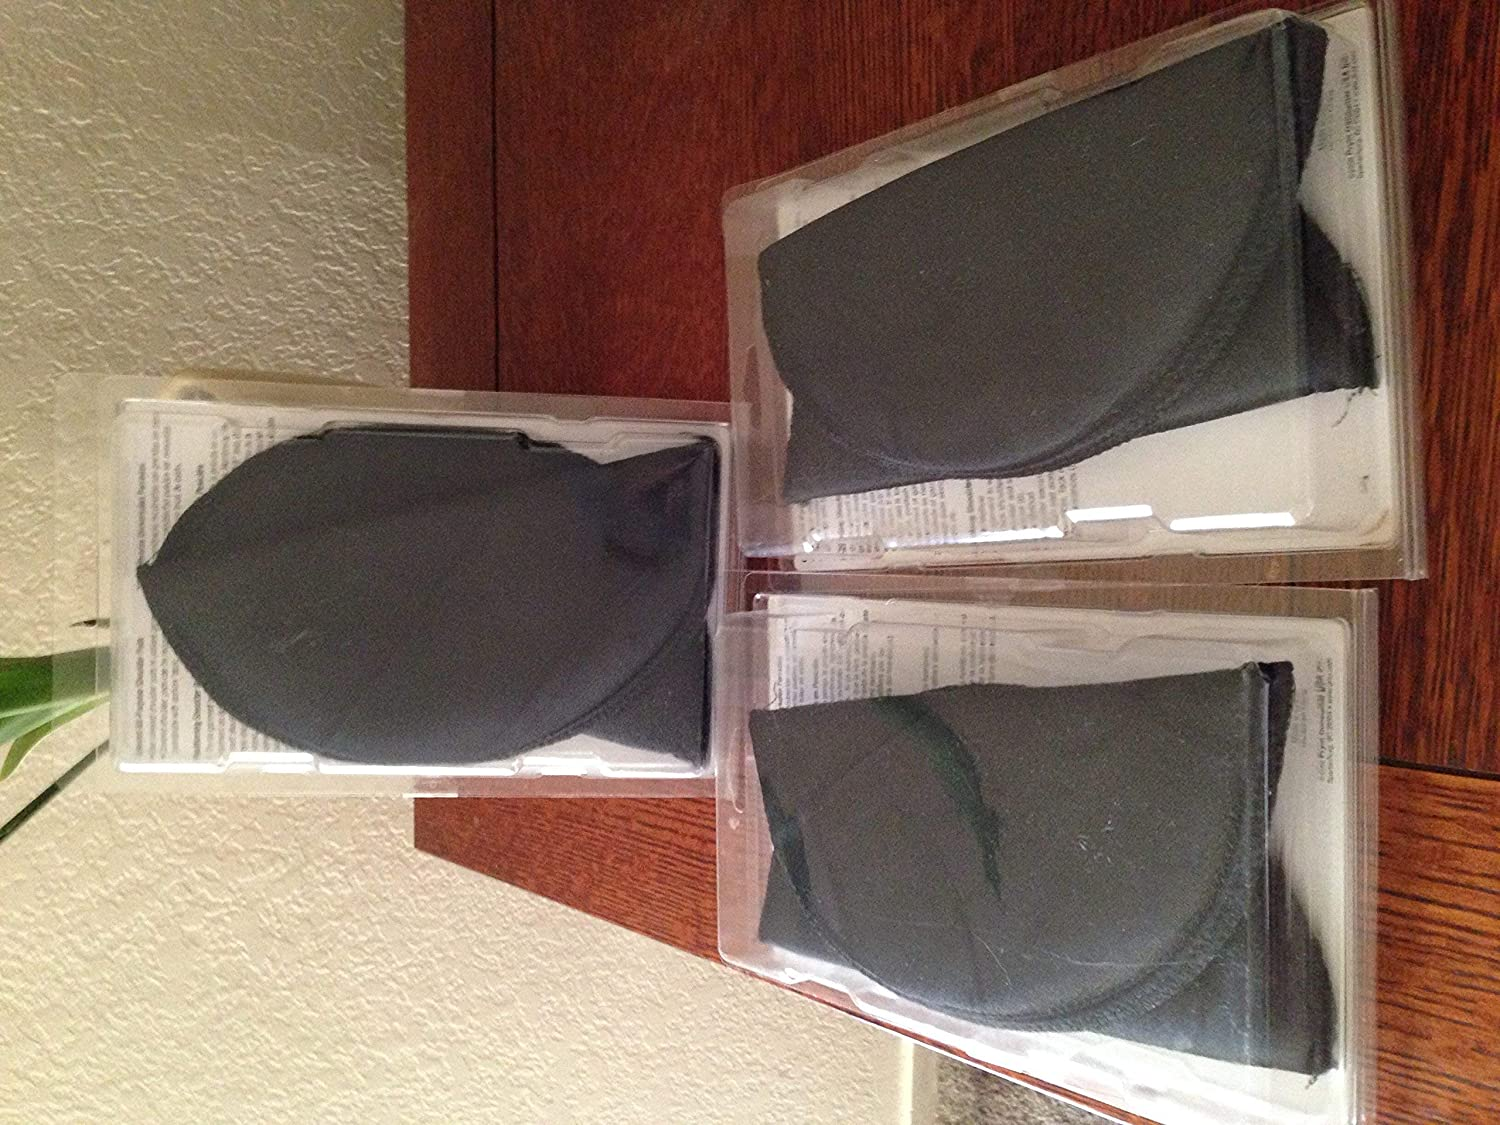 """Dritz 53071-1 Shoulder Pads, Covered All-Purpose, 1/4"""", Black: Arts, Crafts & Sewing"""